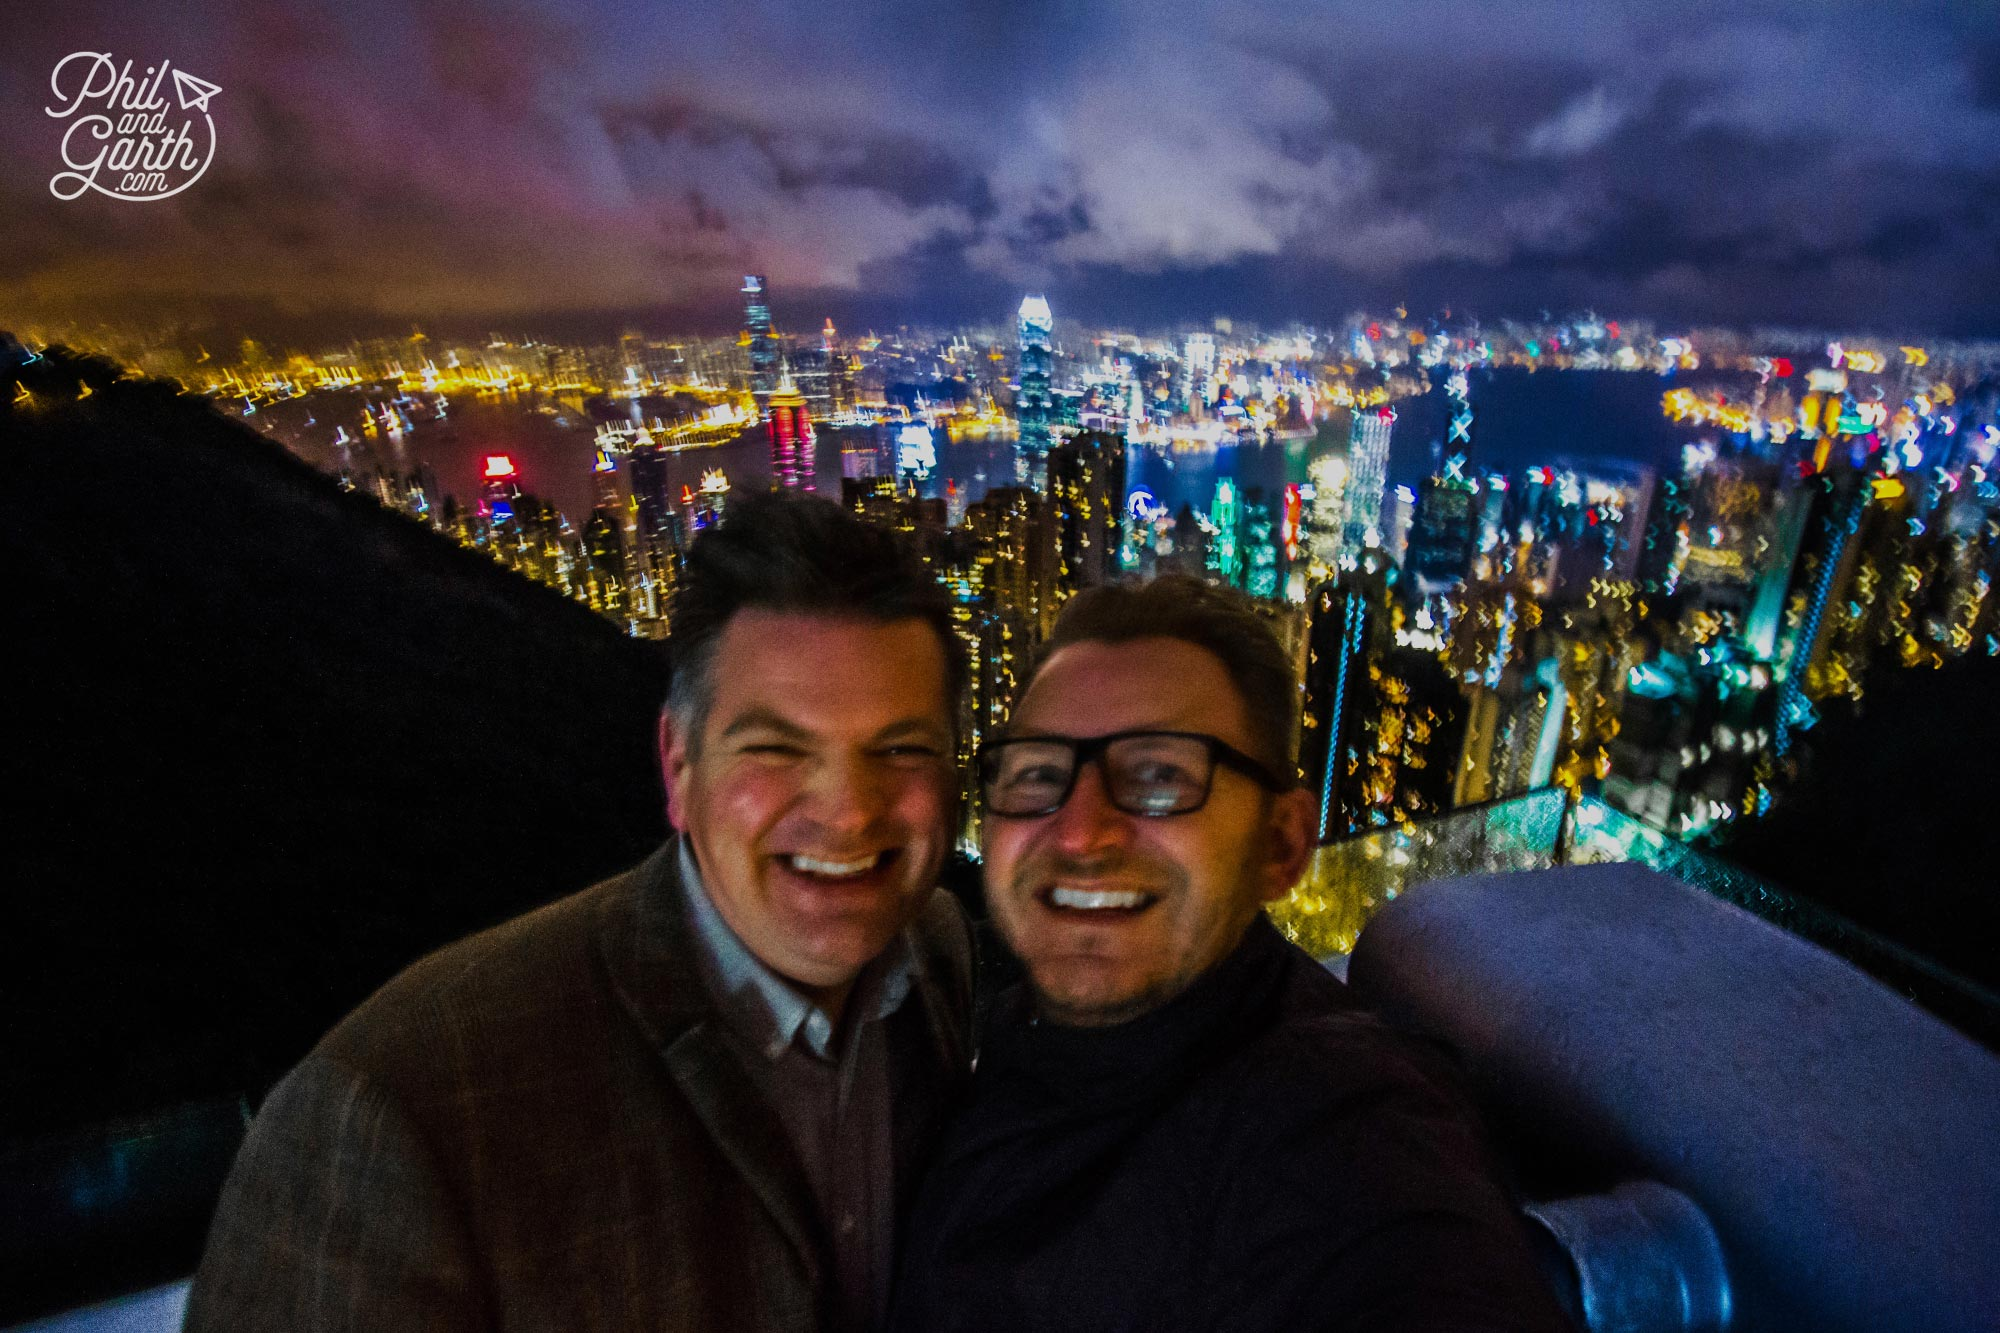 Phil and Garth selfie from Victoria Peak in freezing cold, wind and rain!